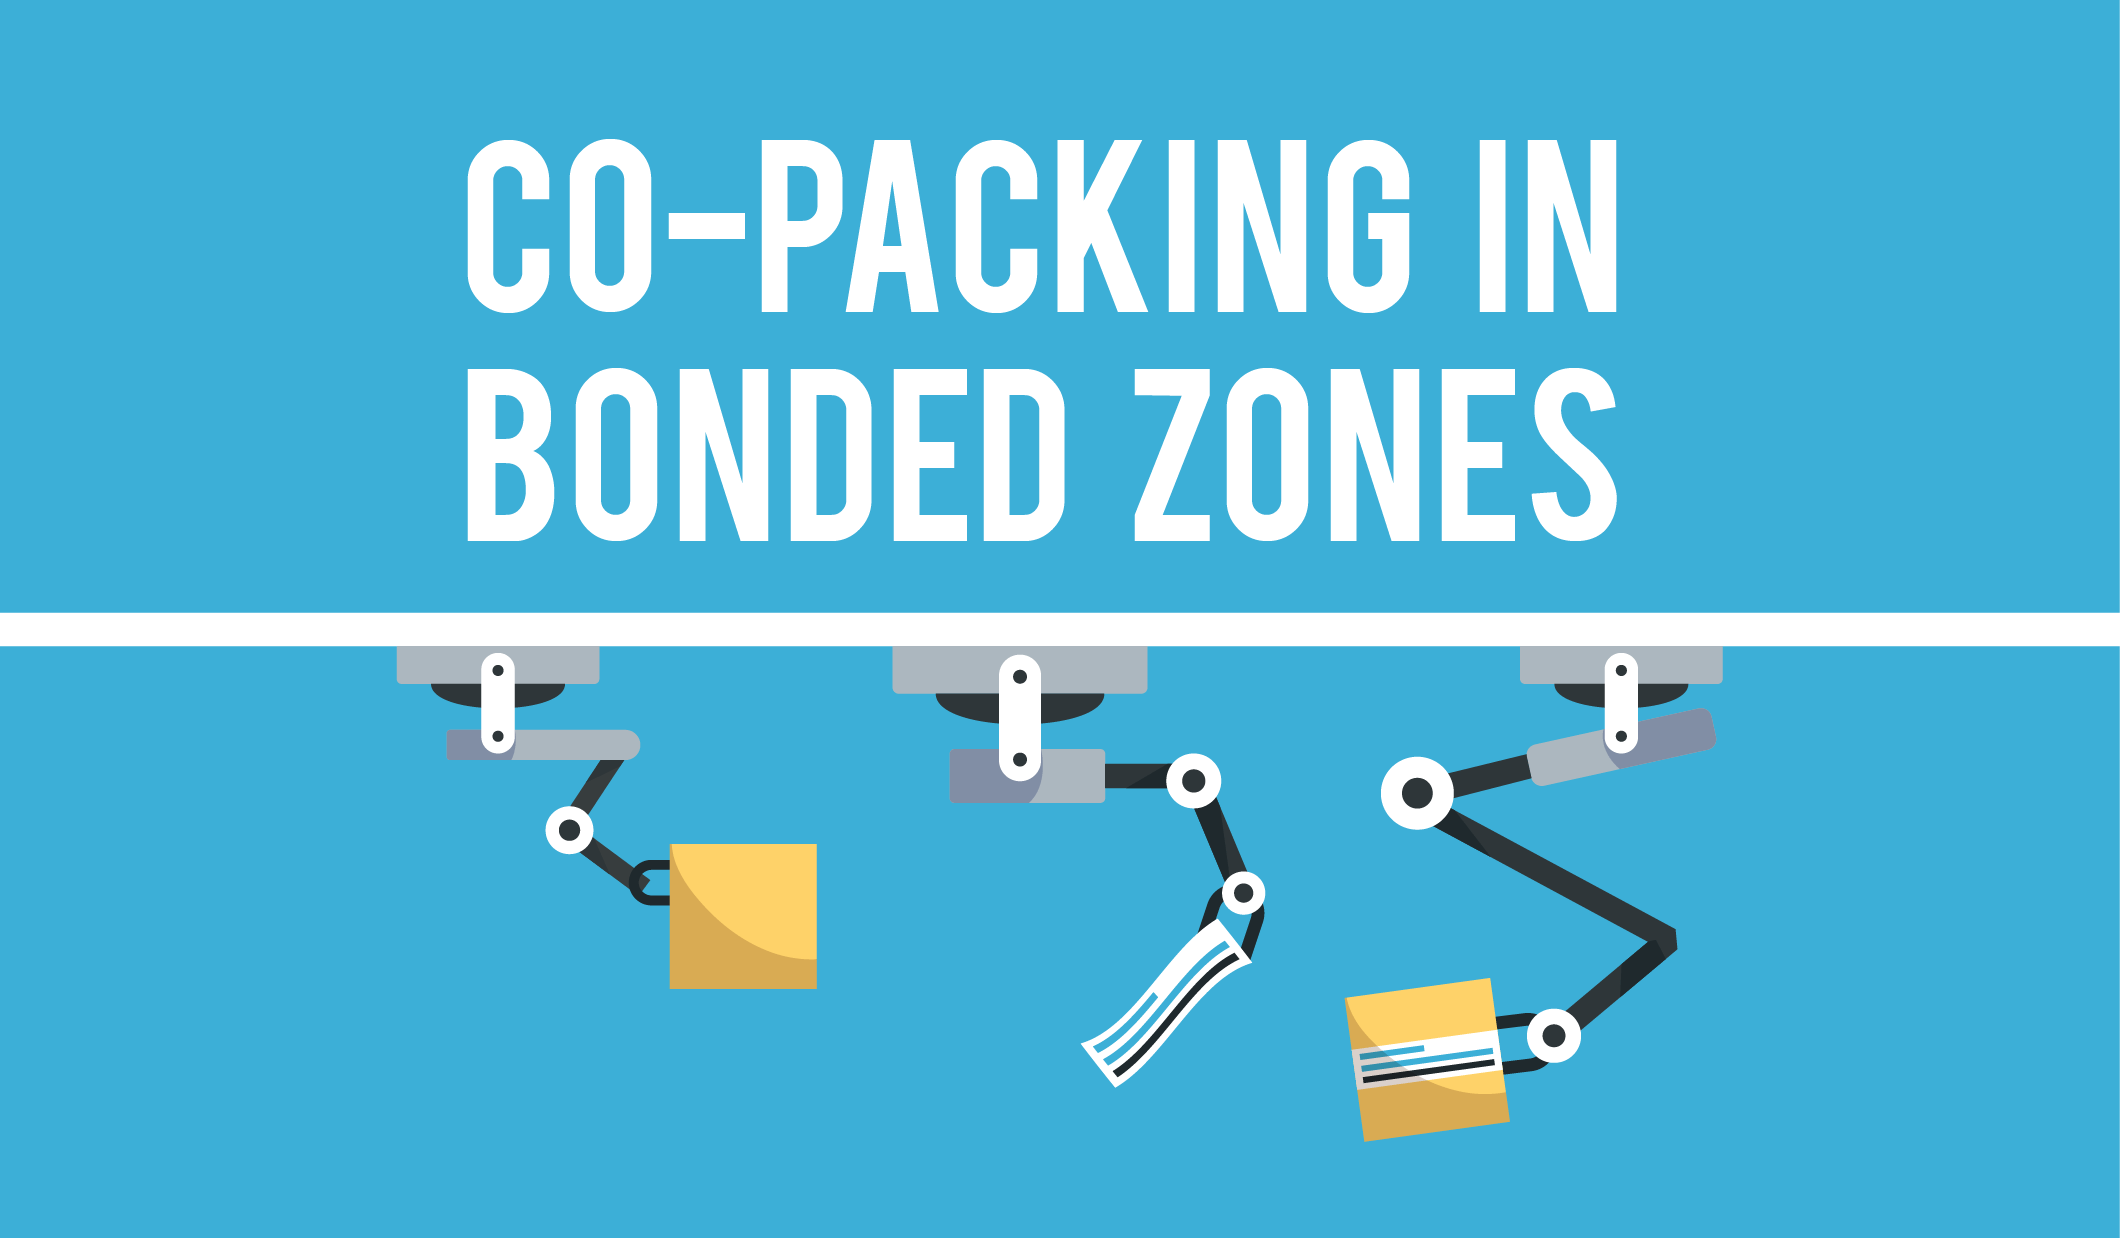 Co-packing in Bonded Zones